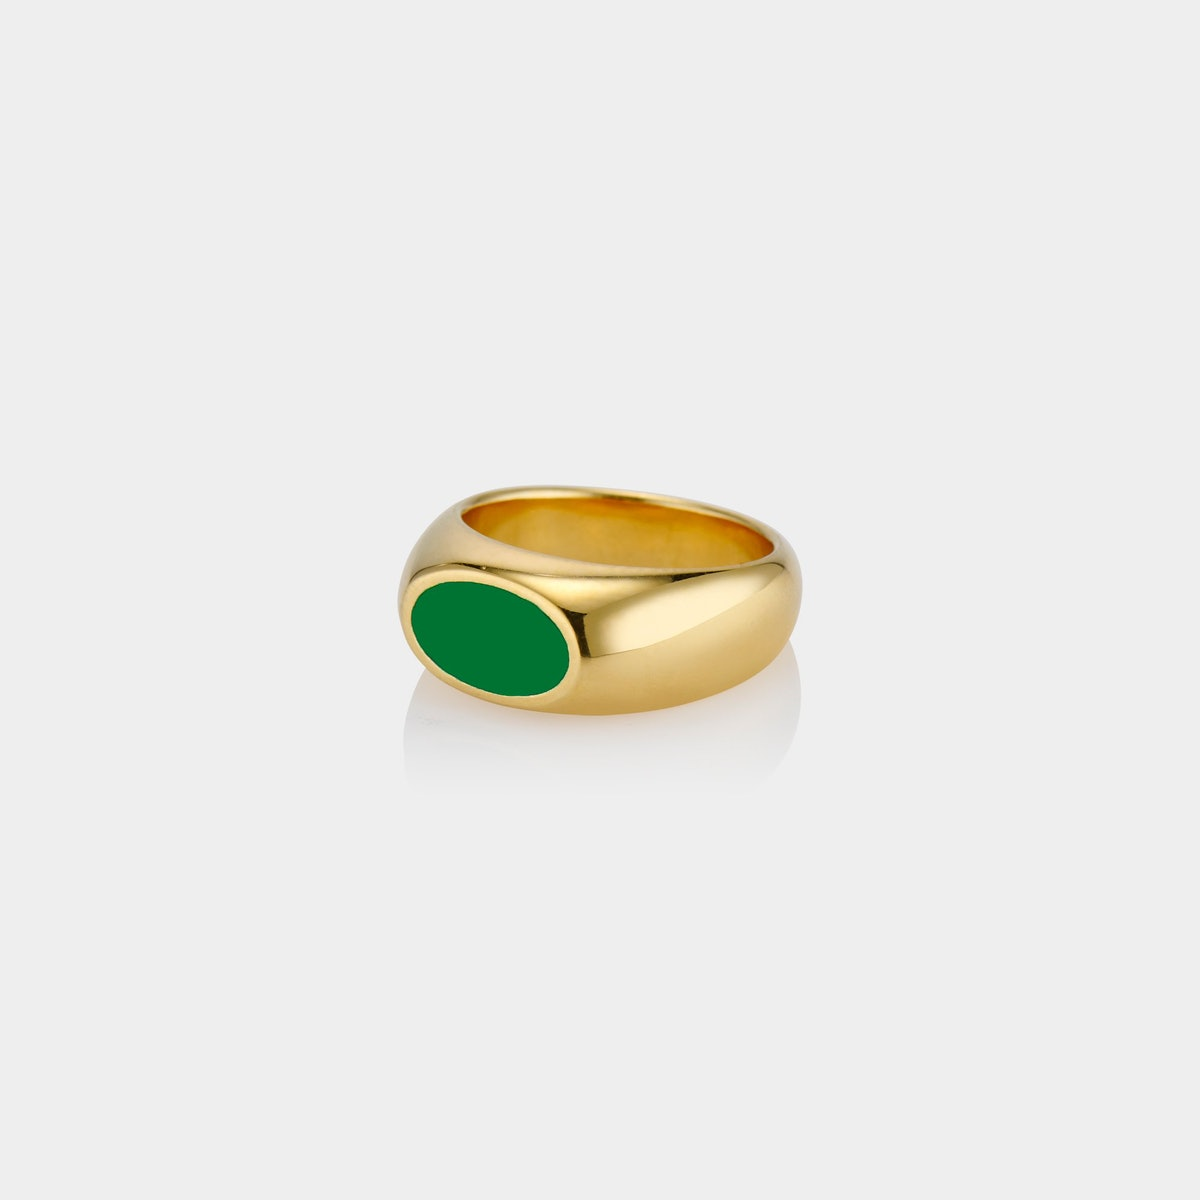 Ophelia gold vermeil ring from Aureum Collective, which has been worn by Gigi and Bella Hadid, Dua L...